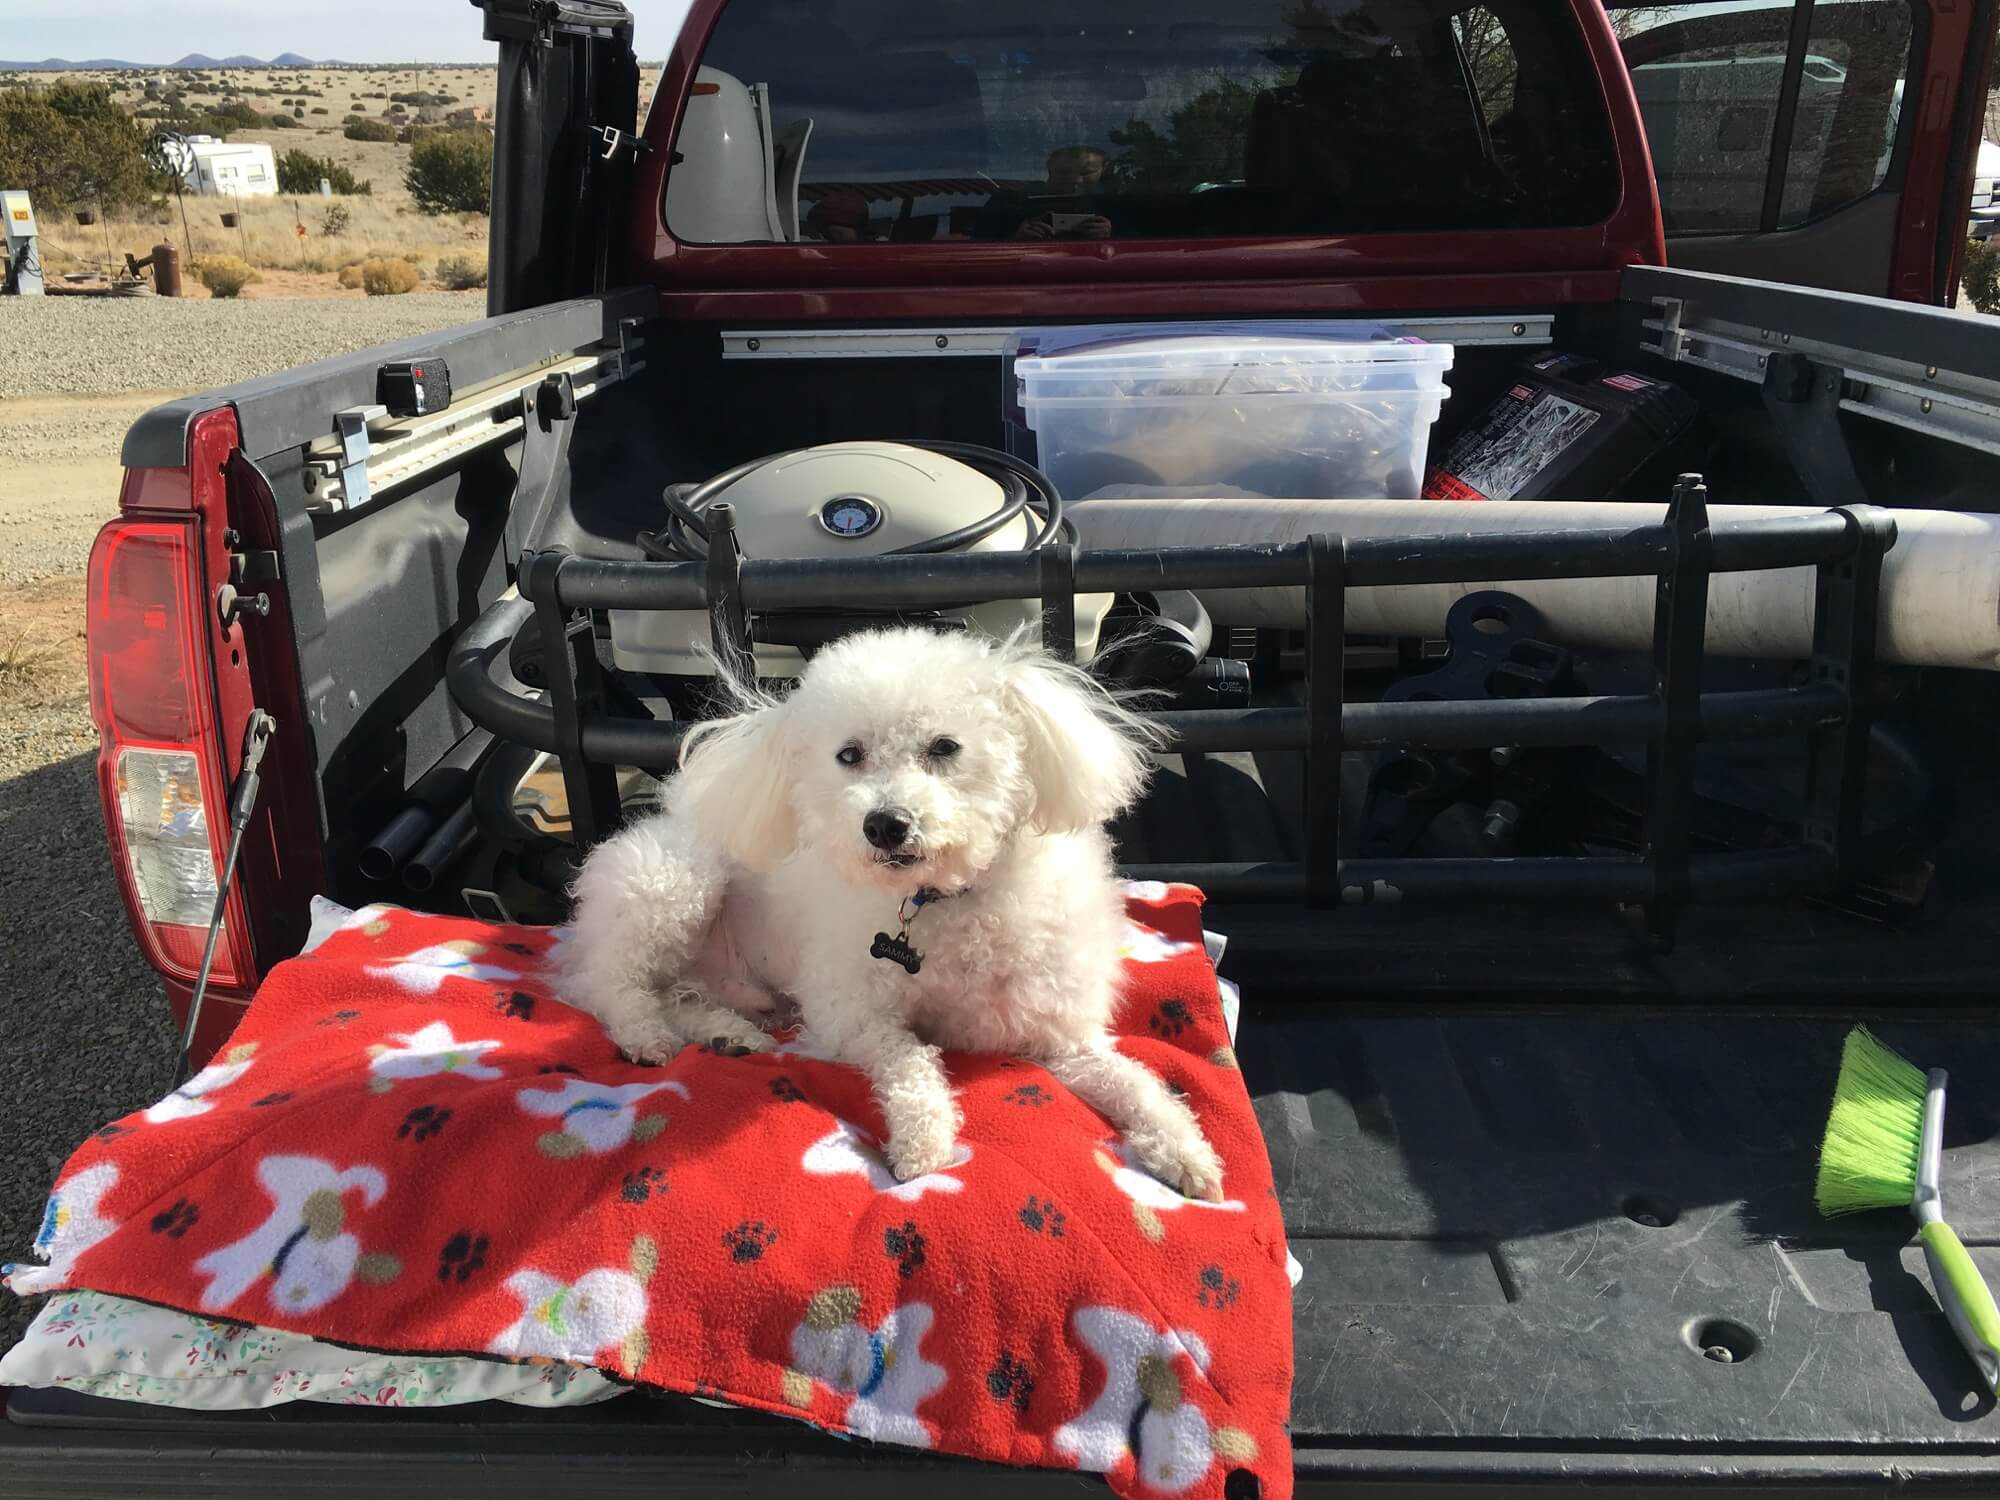 Bichon in Truck Bed